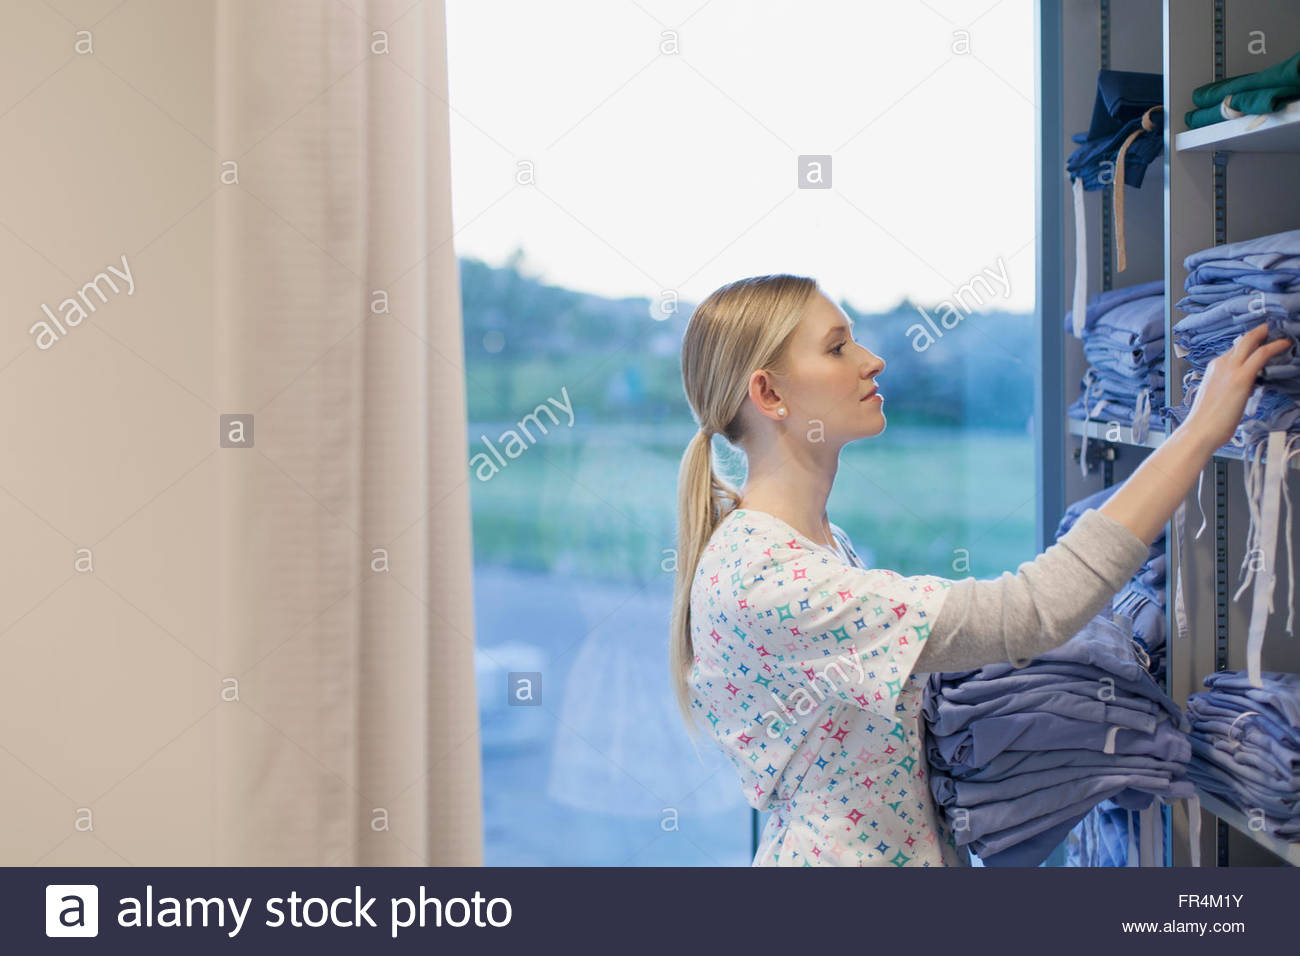 nurse checking hospital gown supplies - Stock Image